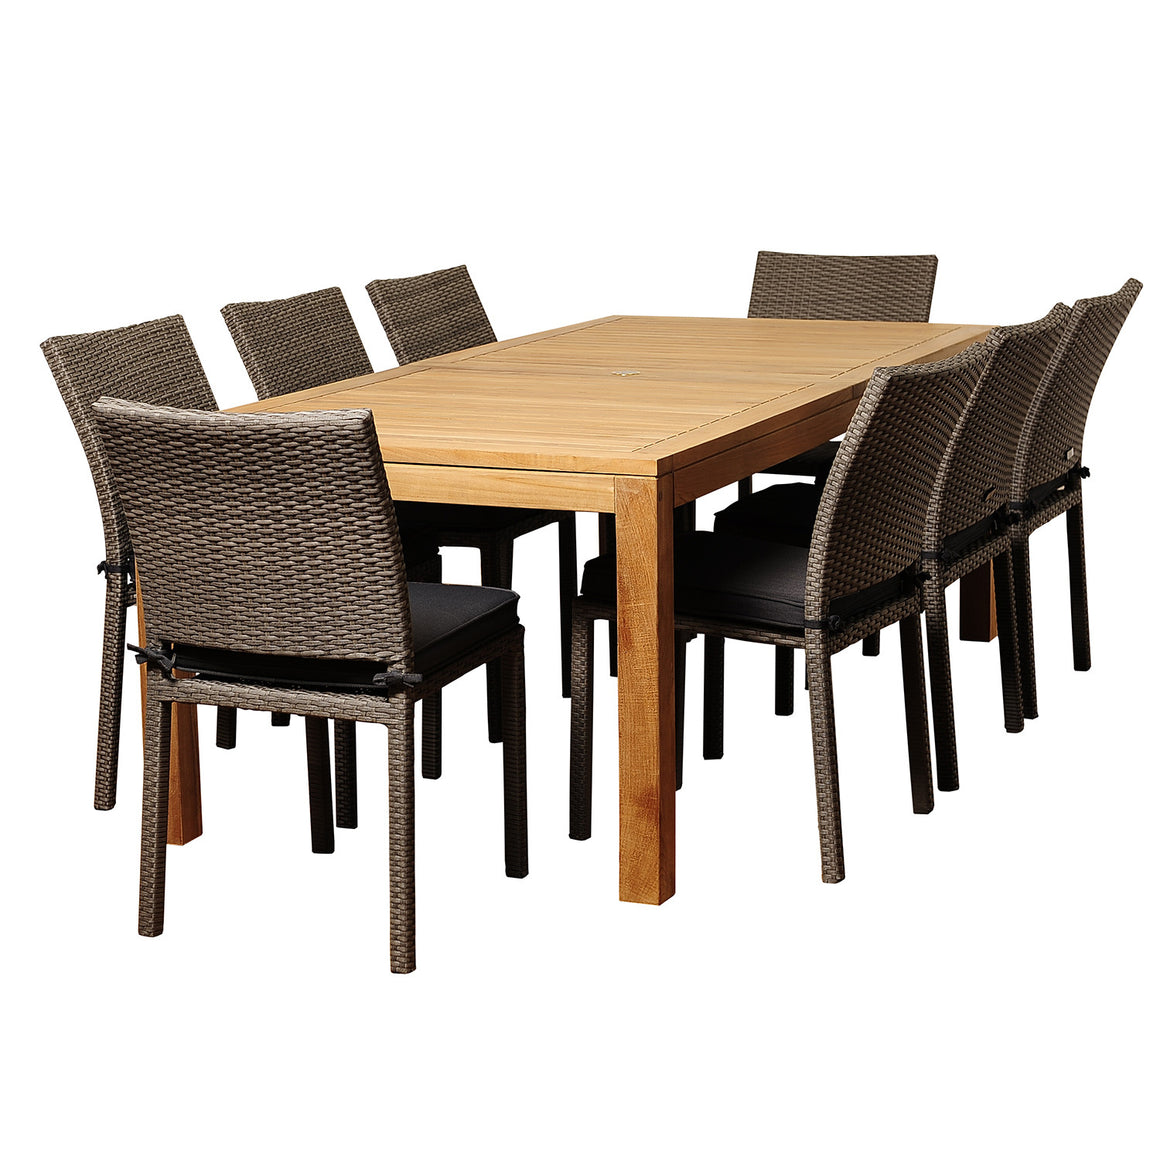 Damian 9 Piece Teak/Wicker Rectangular Patio Dining Set with Grey Cushions , International Home Miami- grayburd